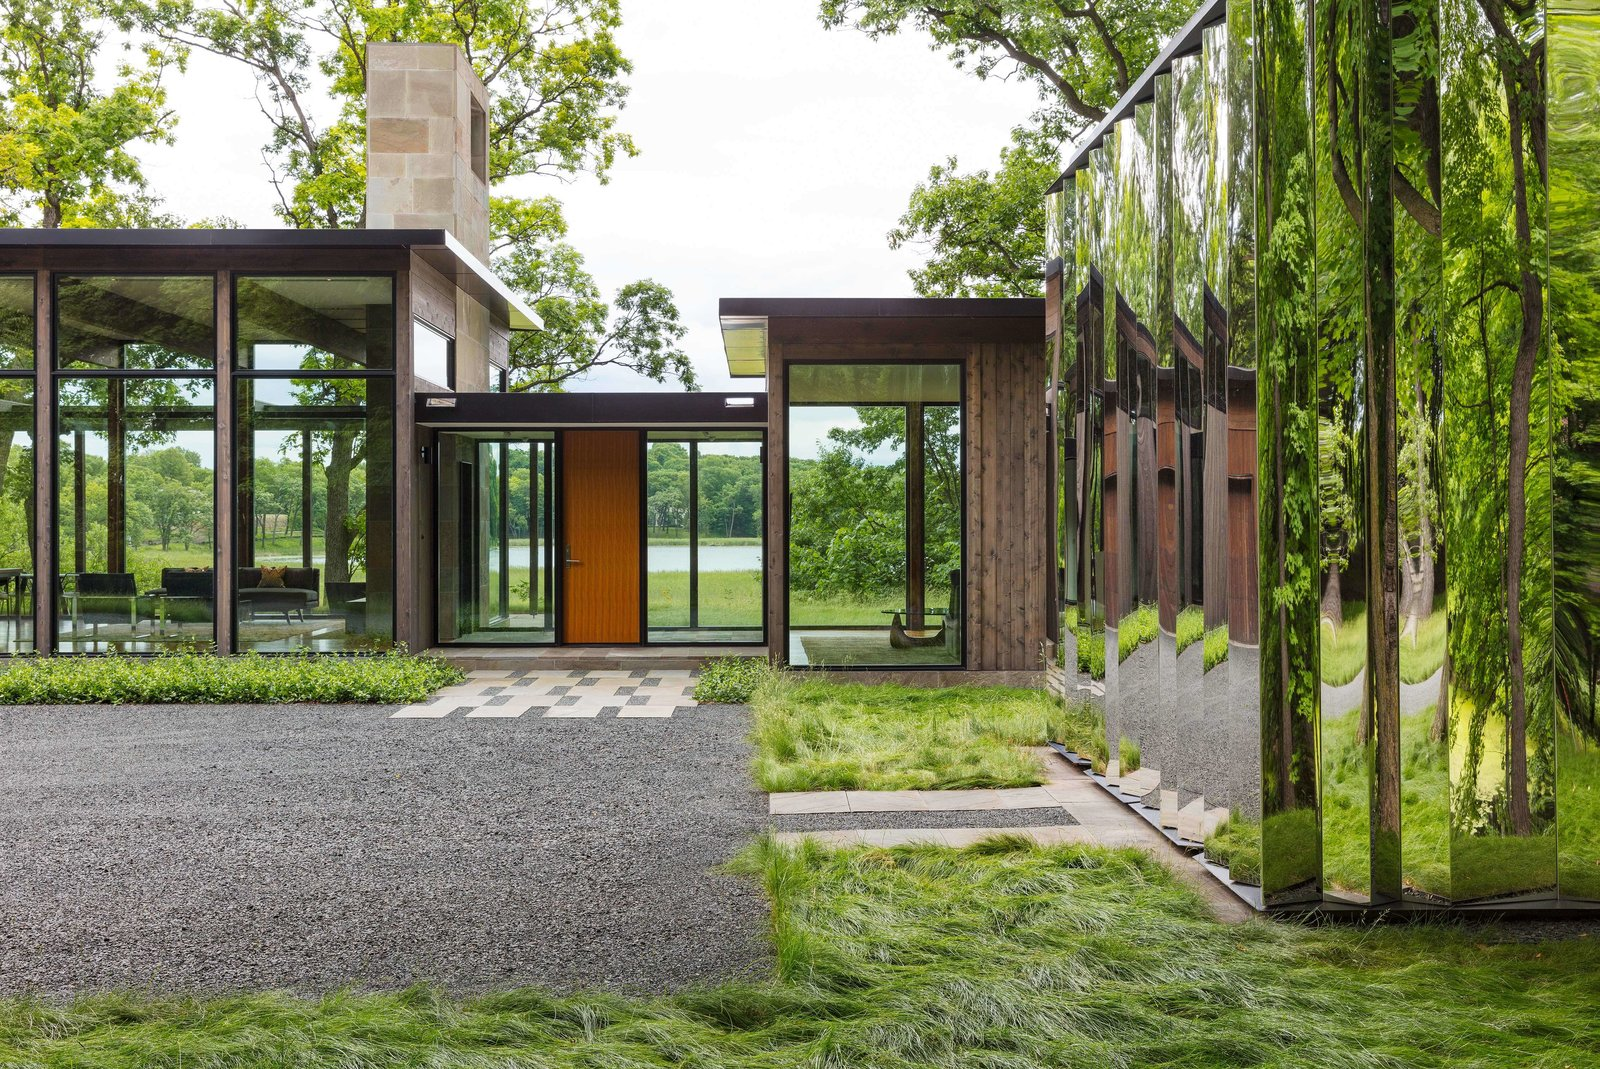 This Glass House And Quot Shiny Shed Quot Merge With Nature In